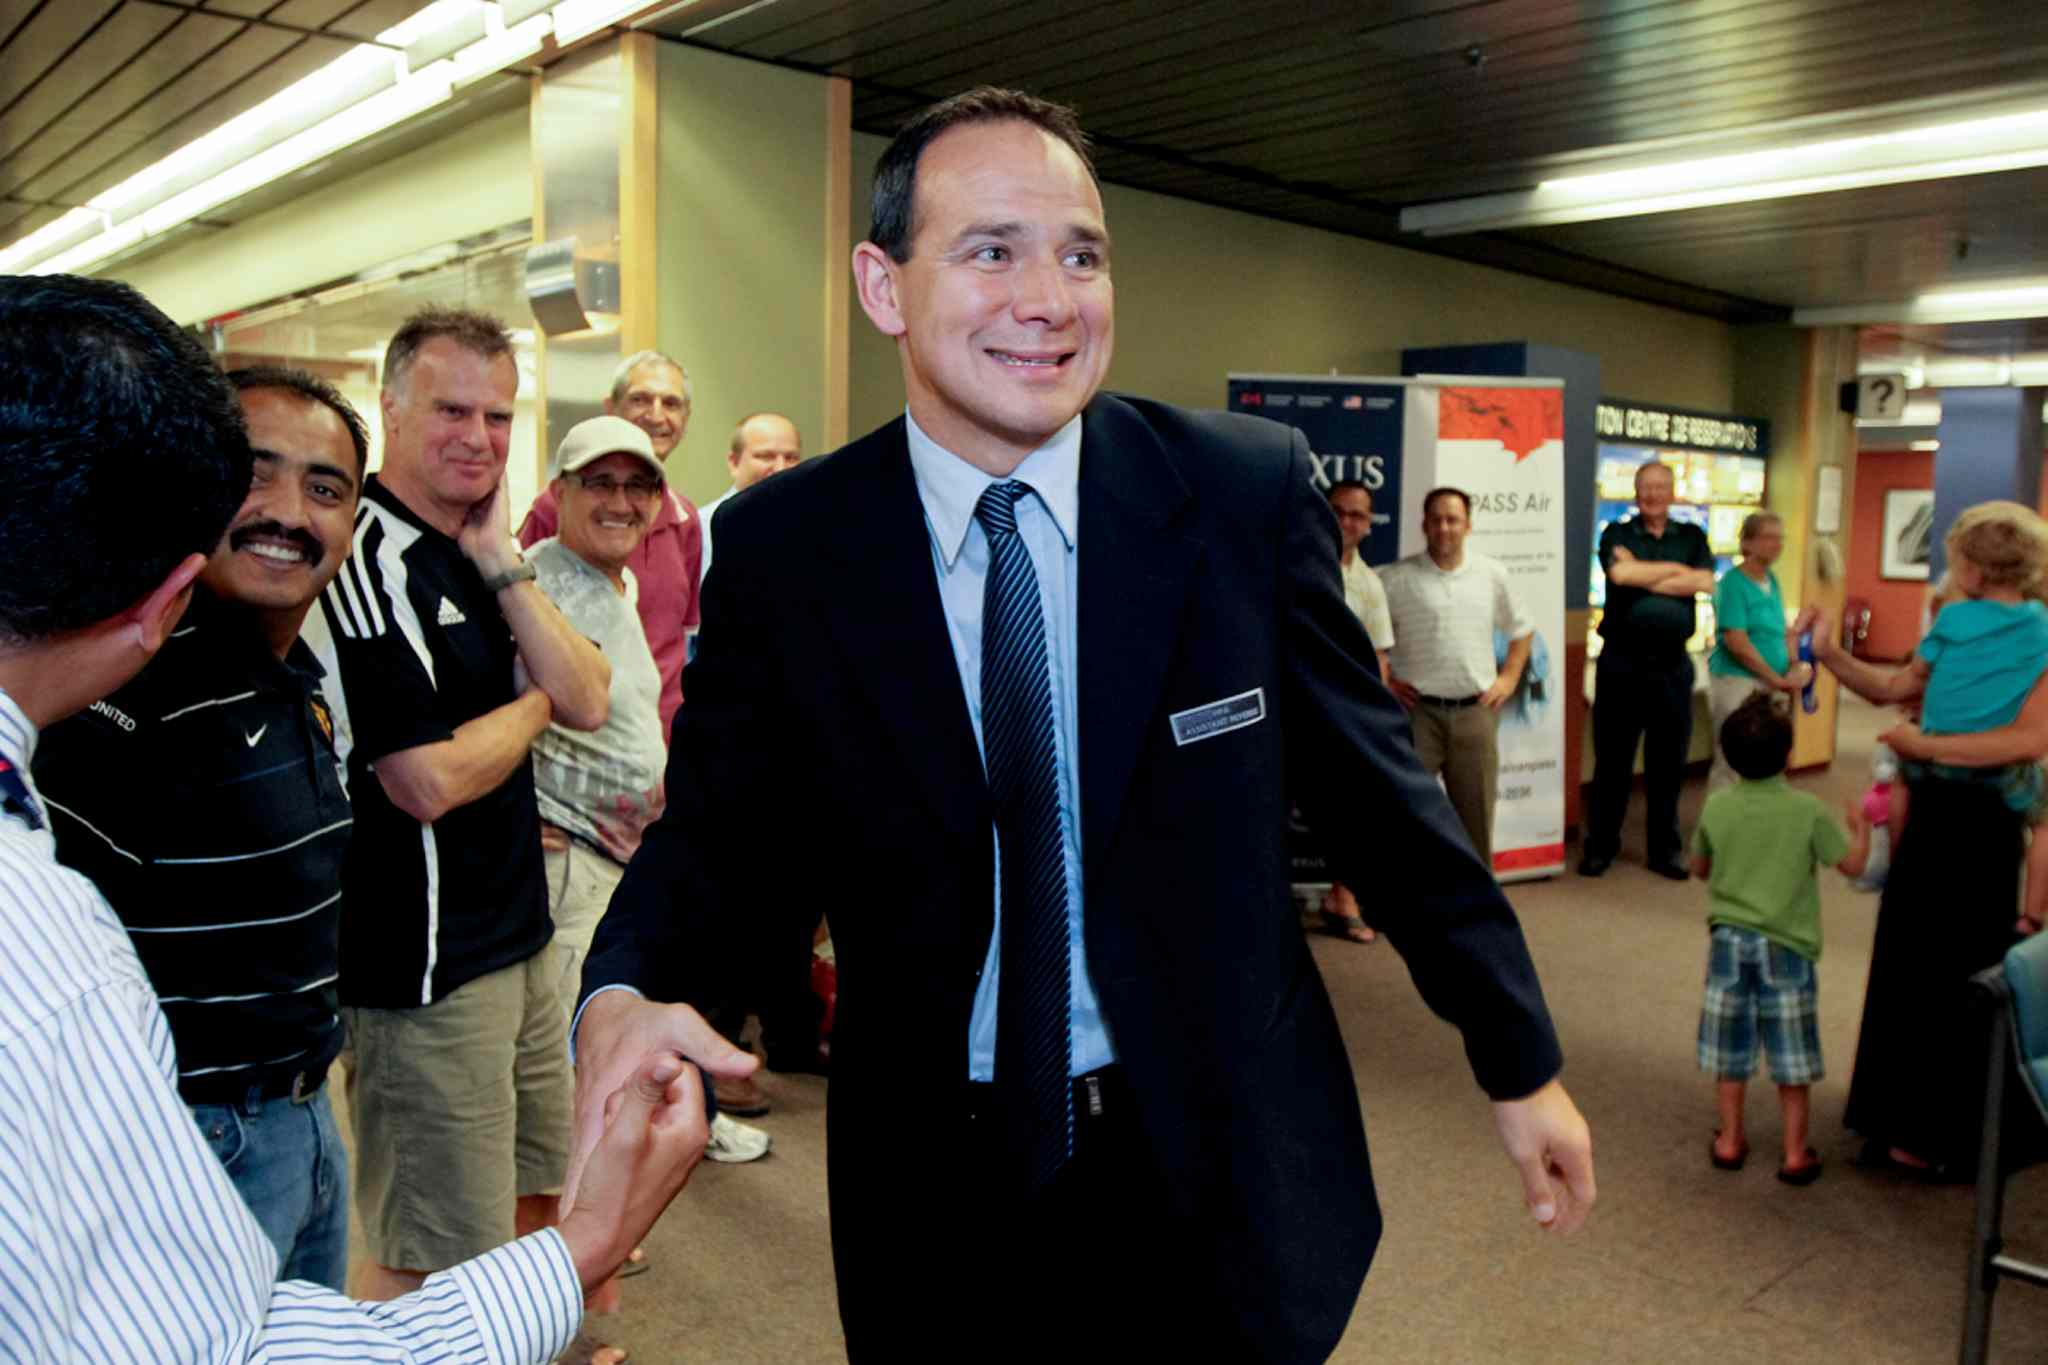 In this file photo, Hector Vergara arrives home to applause from family and friends following his return from the FIFA World Cup in 2010. Vergara had been officiating in South Africa as an assistant referee. It was his third and final World Cup.